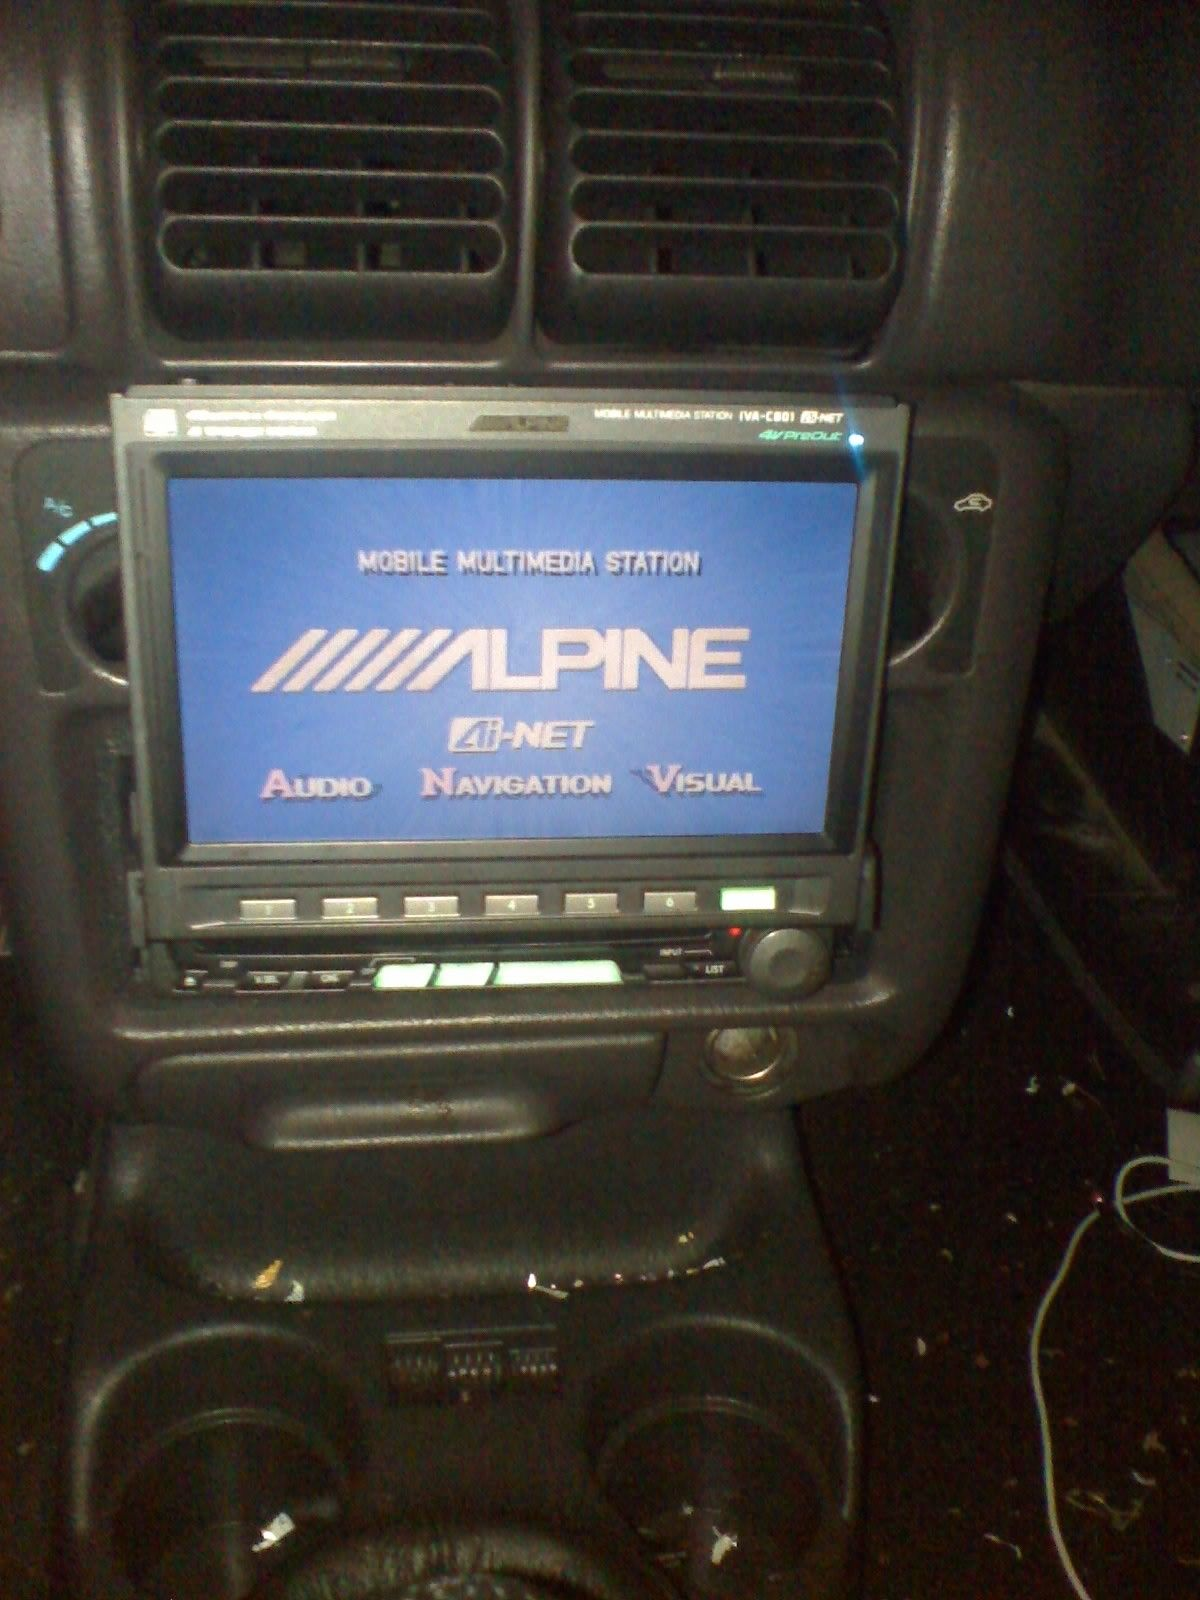 Alpine Car Stereo Dvd Player The Iva Multimedia Center Indash 1200x1600